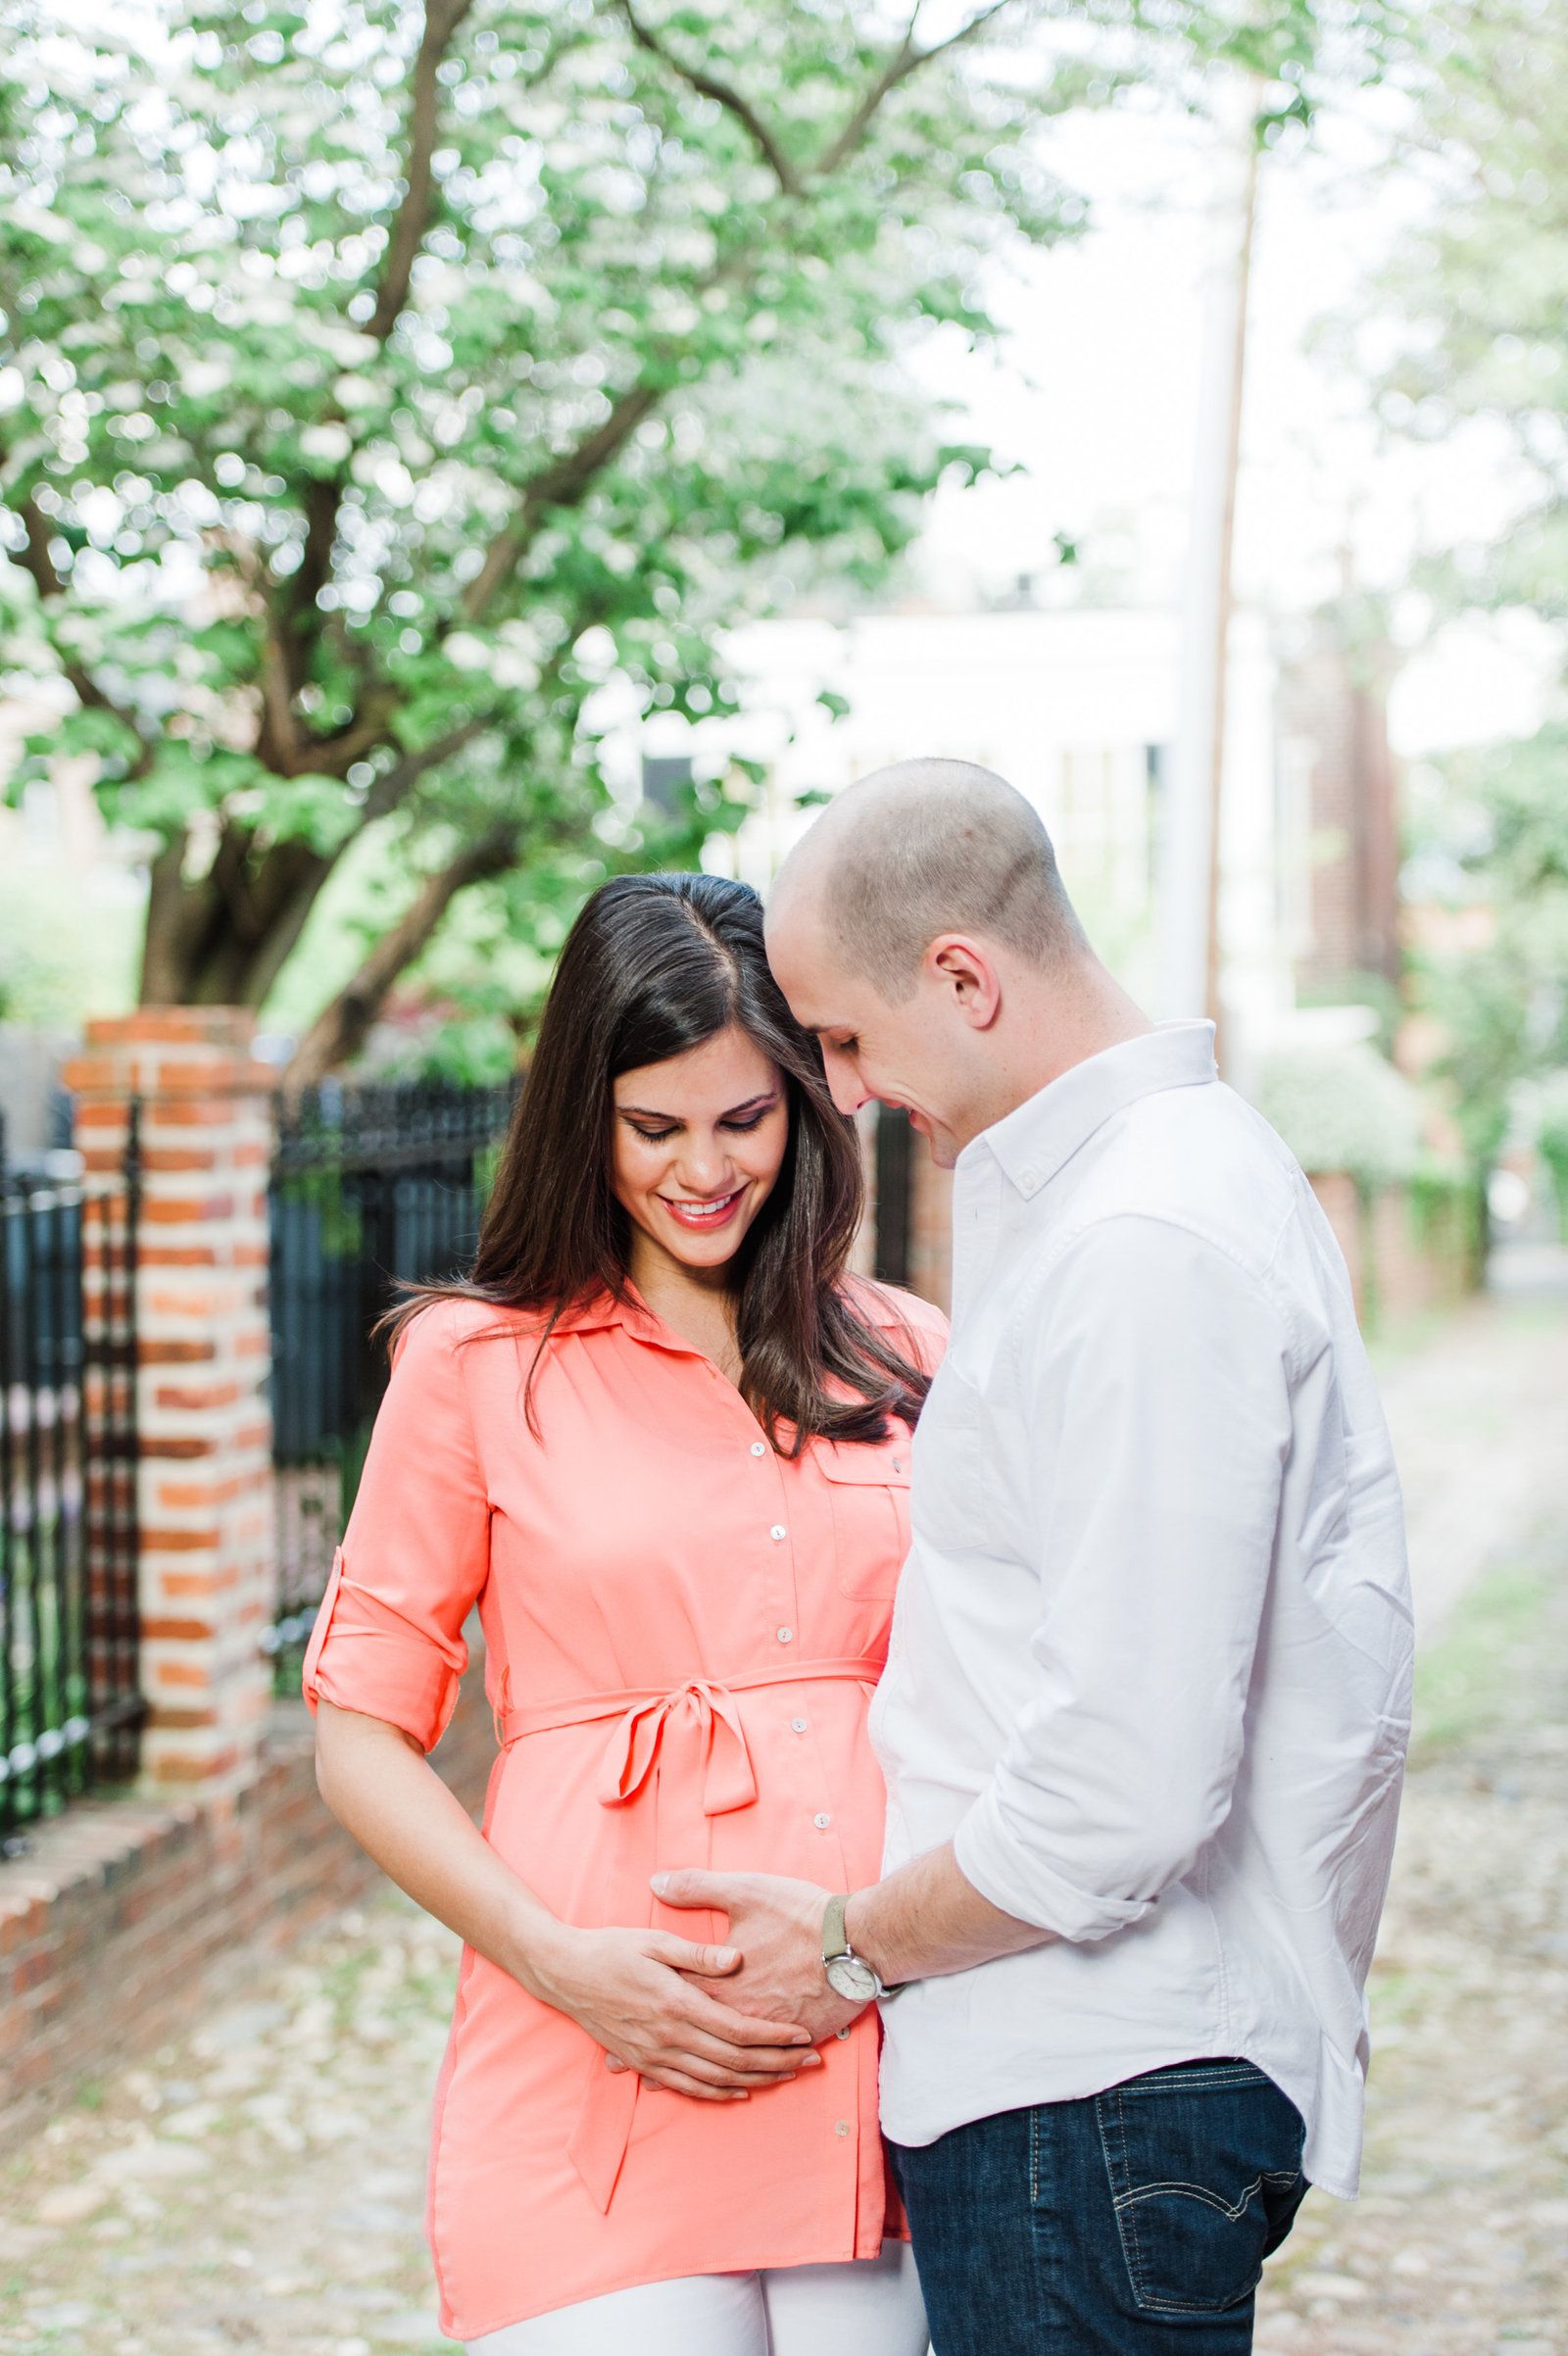 Maternity Photography by Rachael Foster Indianapolis Photographer -2